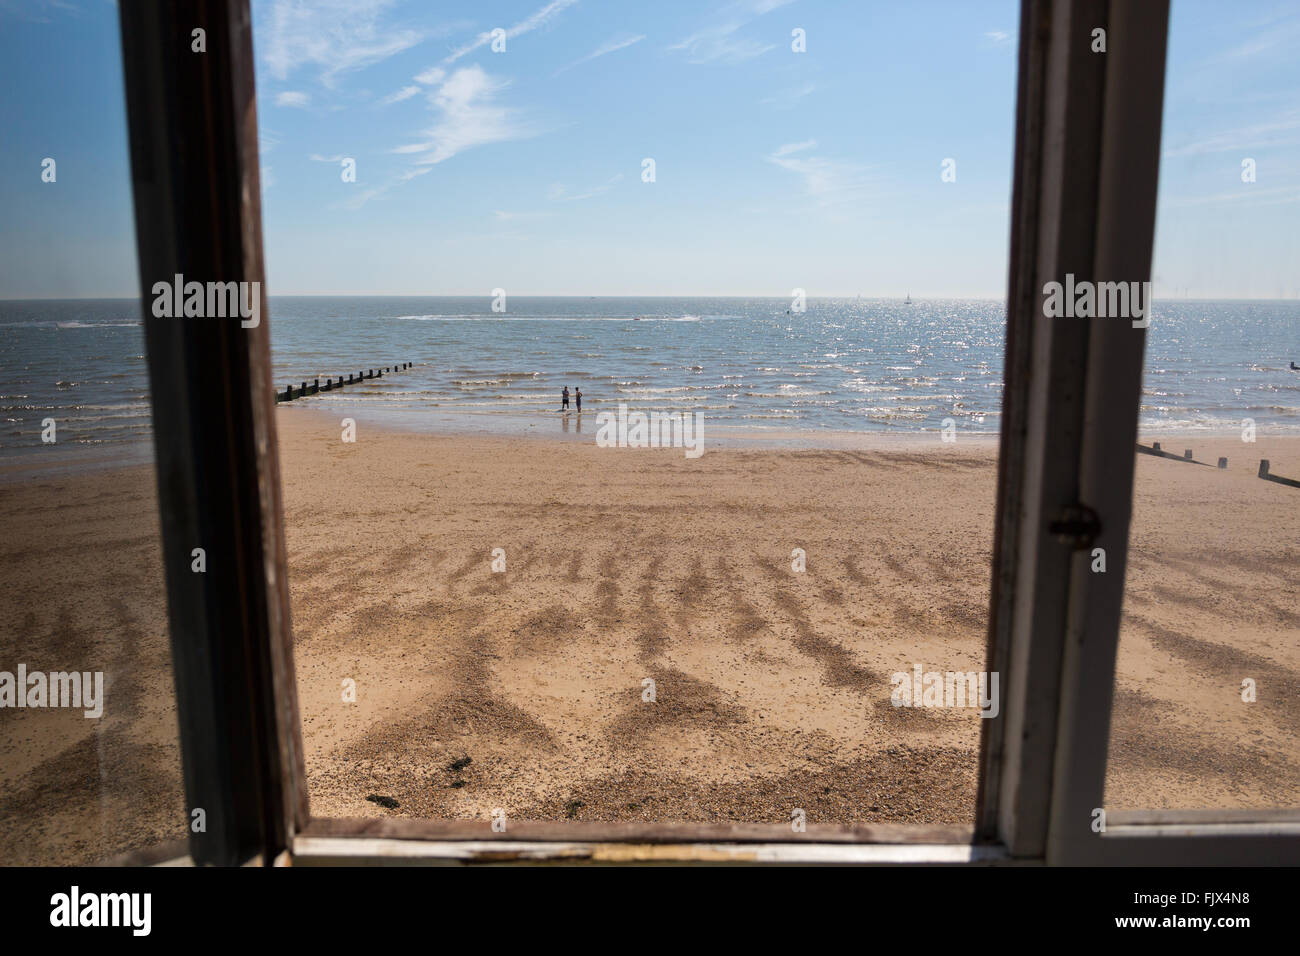 Open window beach - Looking Out Towards The Beach From The Open Window Of A Beach Hut